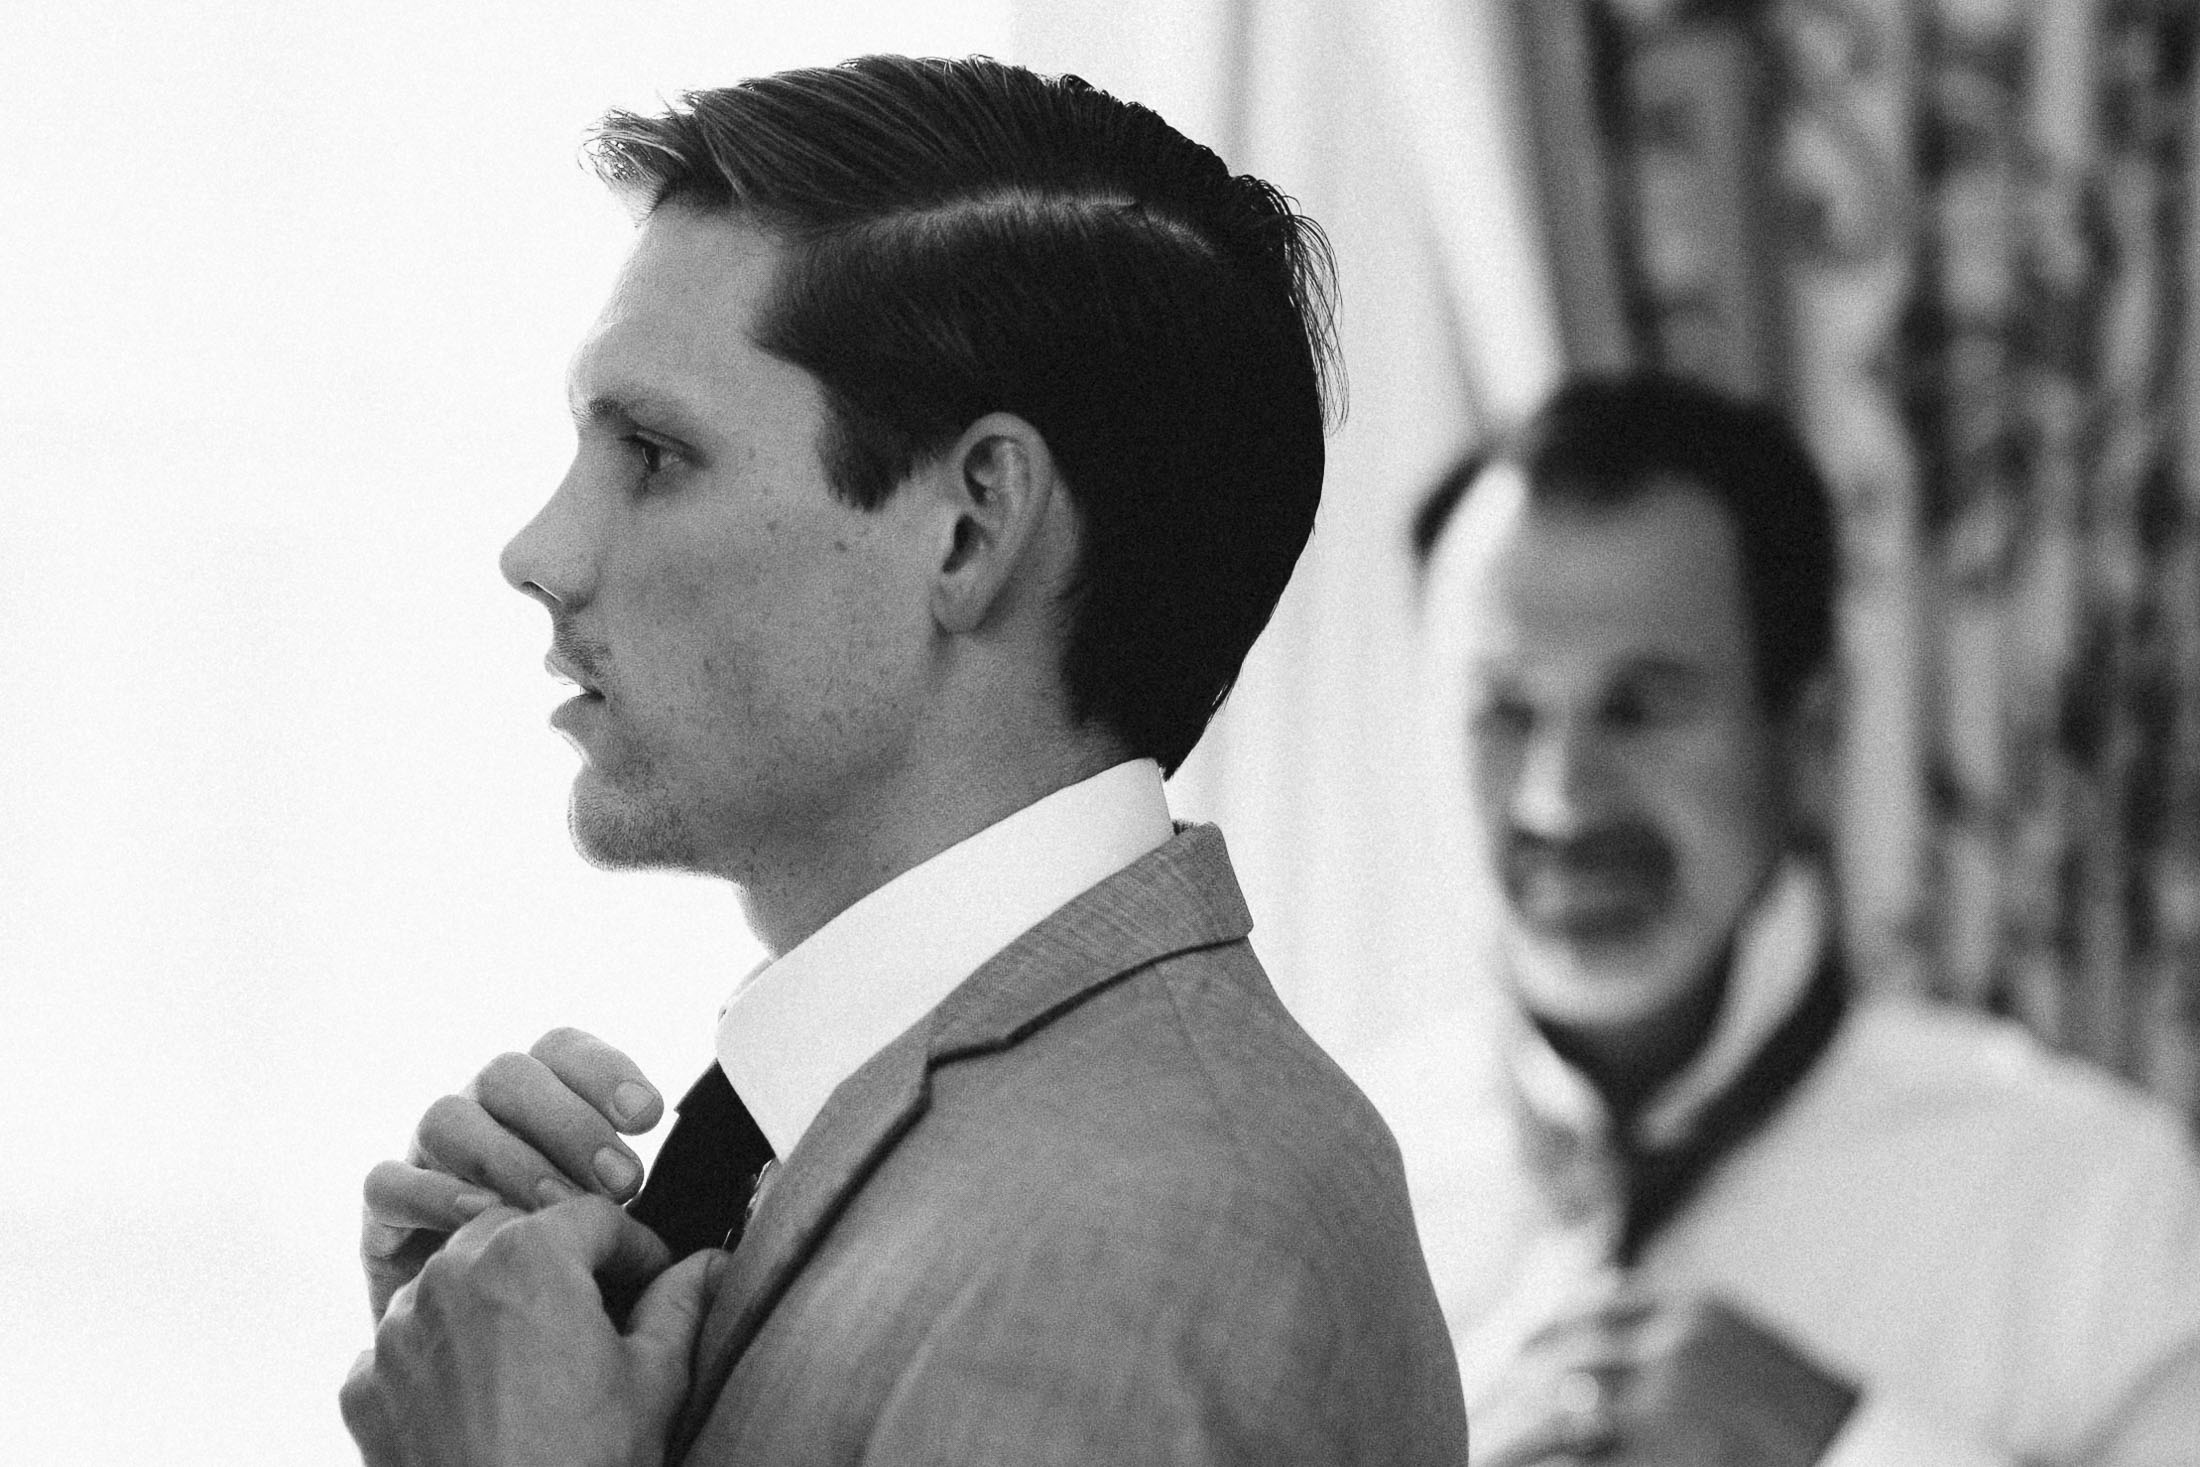 Black and white photo of groom fixing his tie inside a hotel room at The Broadmoor.